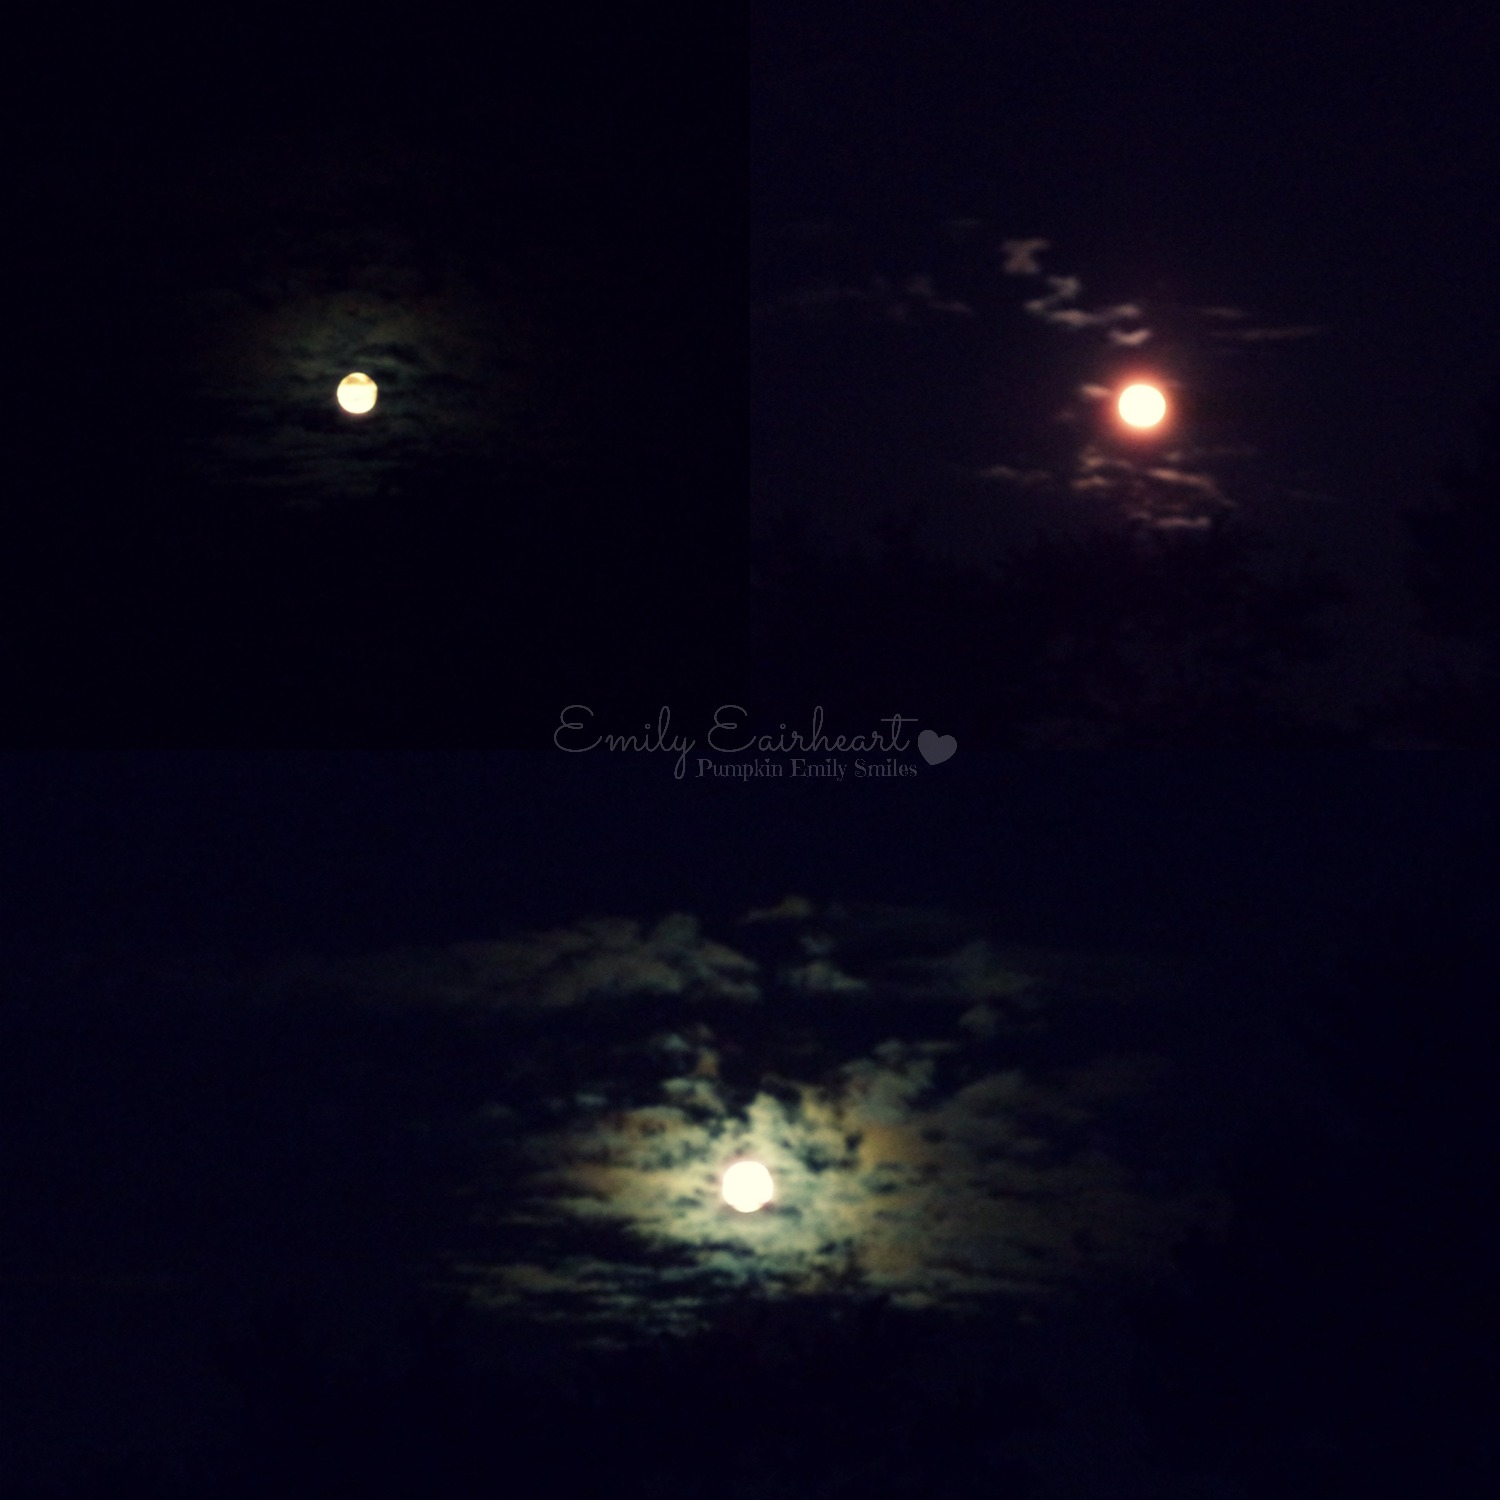 Collage of three moons